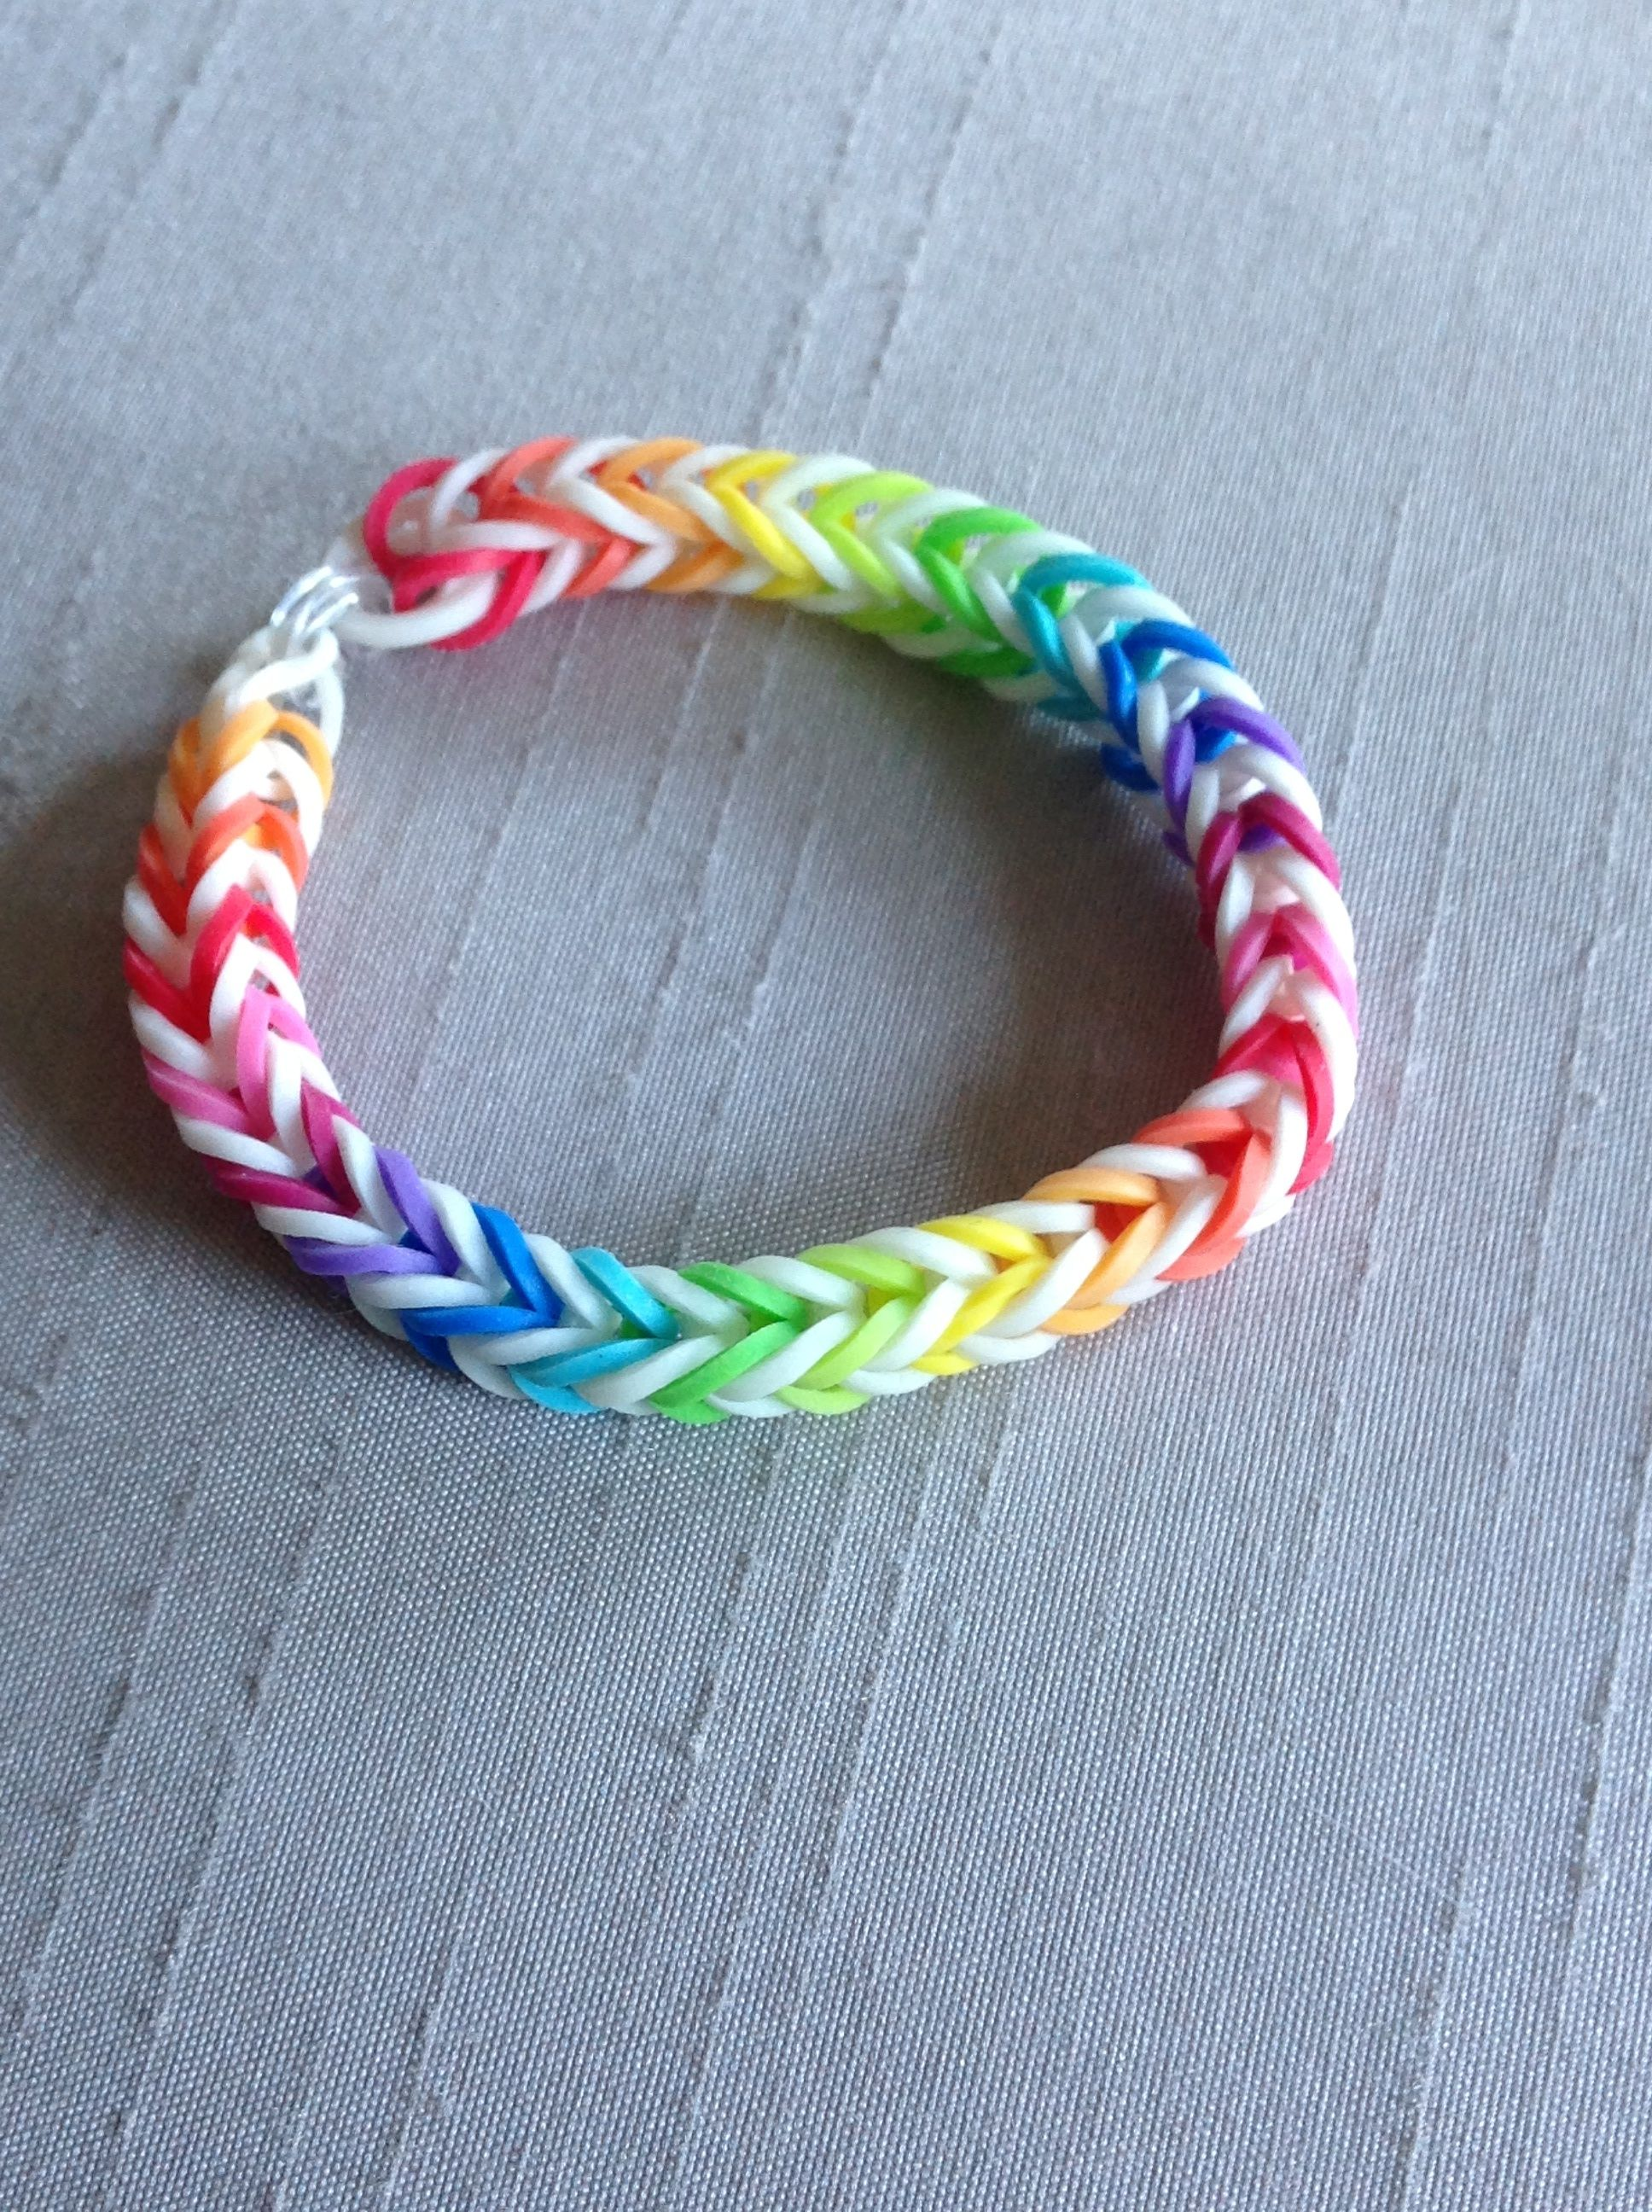 Glow In The Dark Rainbow Loom Bracelet Fishtail Design